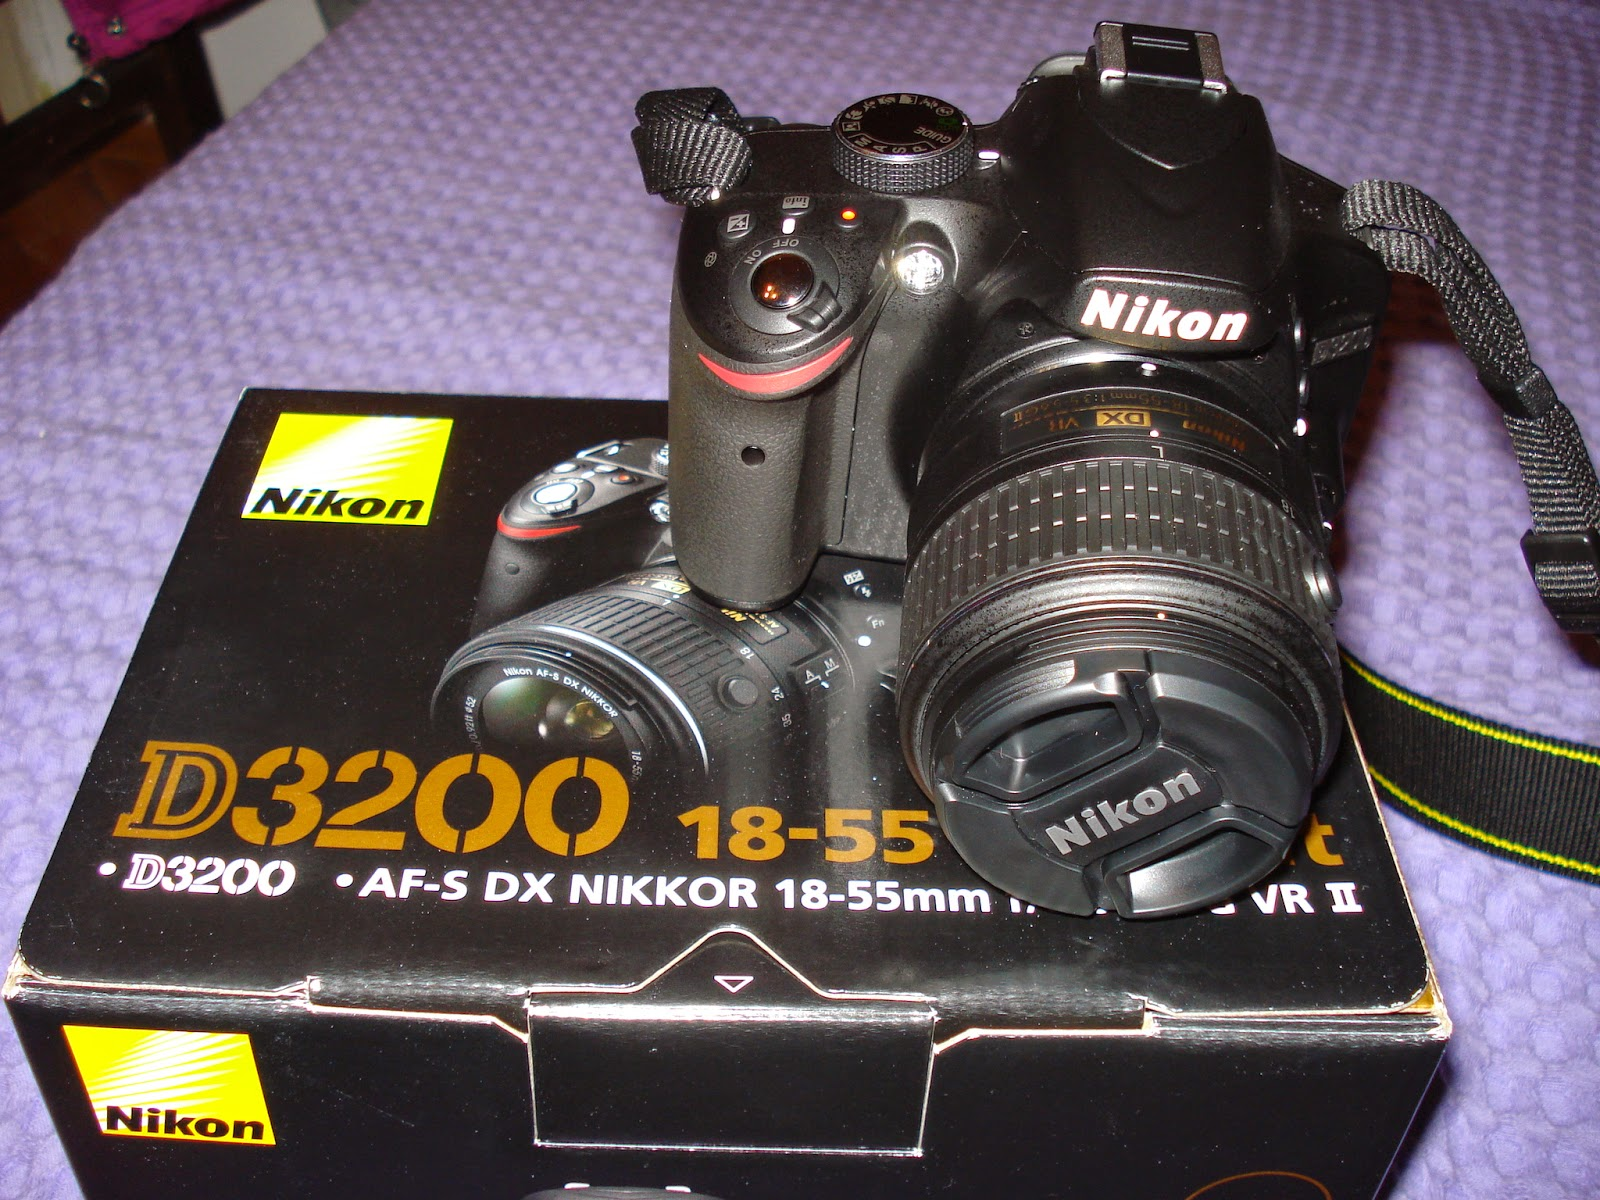 Nikon D3200 DSLR camera - consumer review - Test and Review